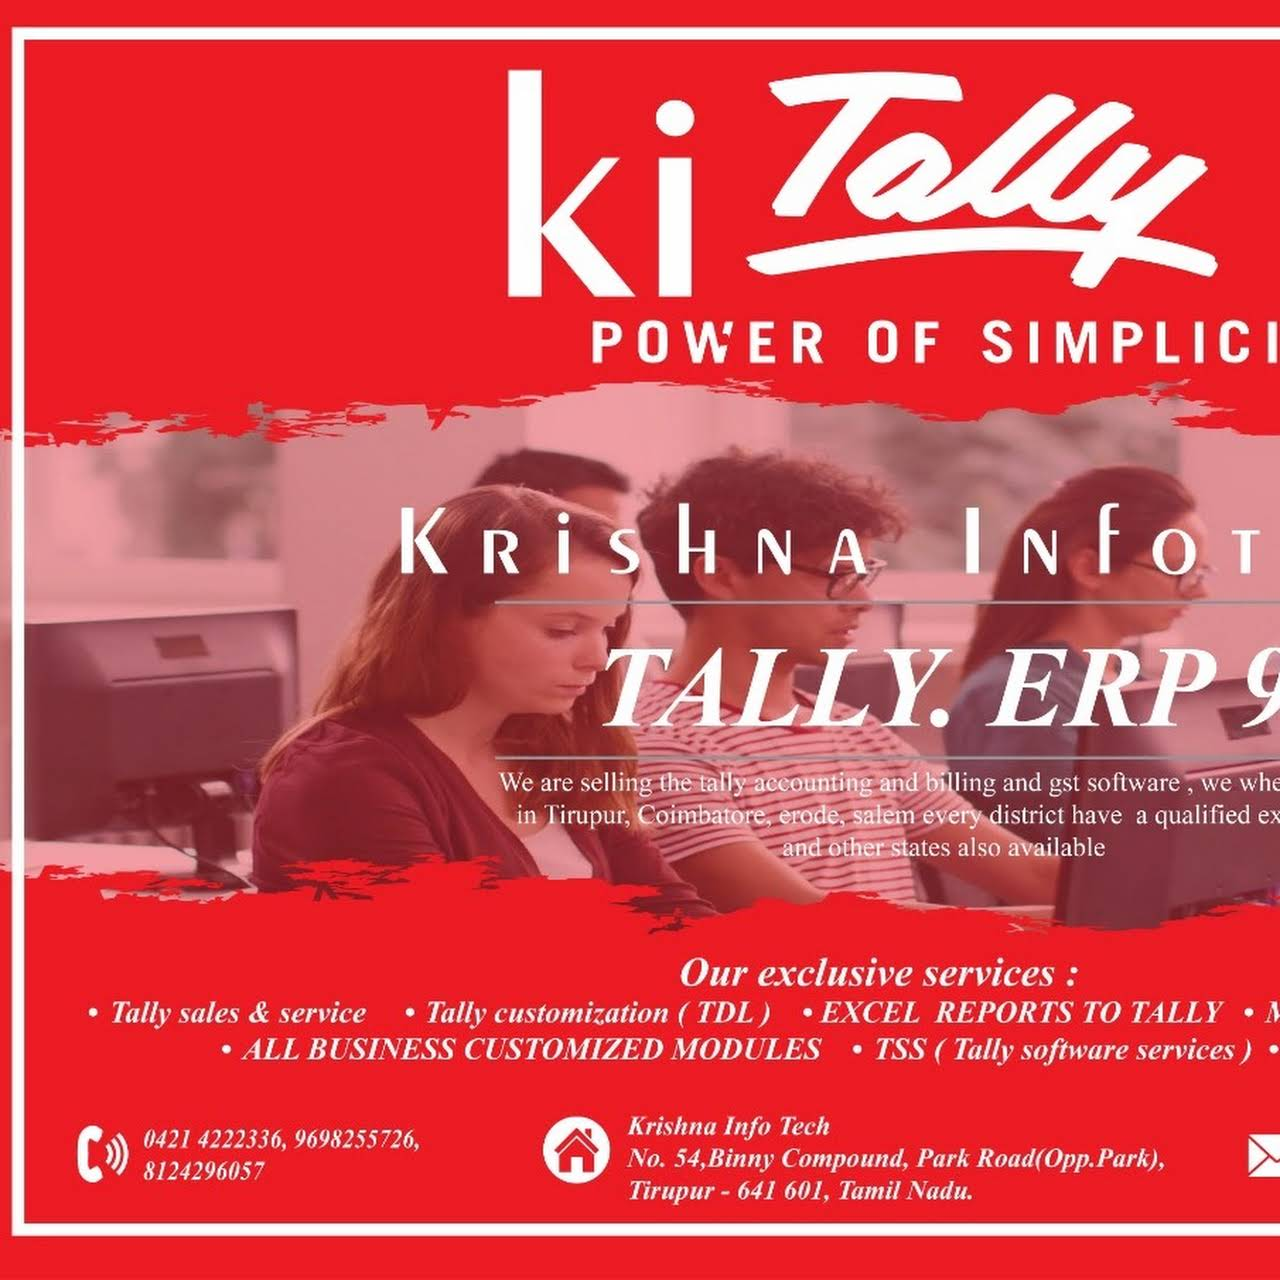 Krishna infotech - Tally Software - Authorized Tally partner